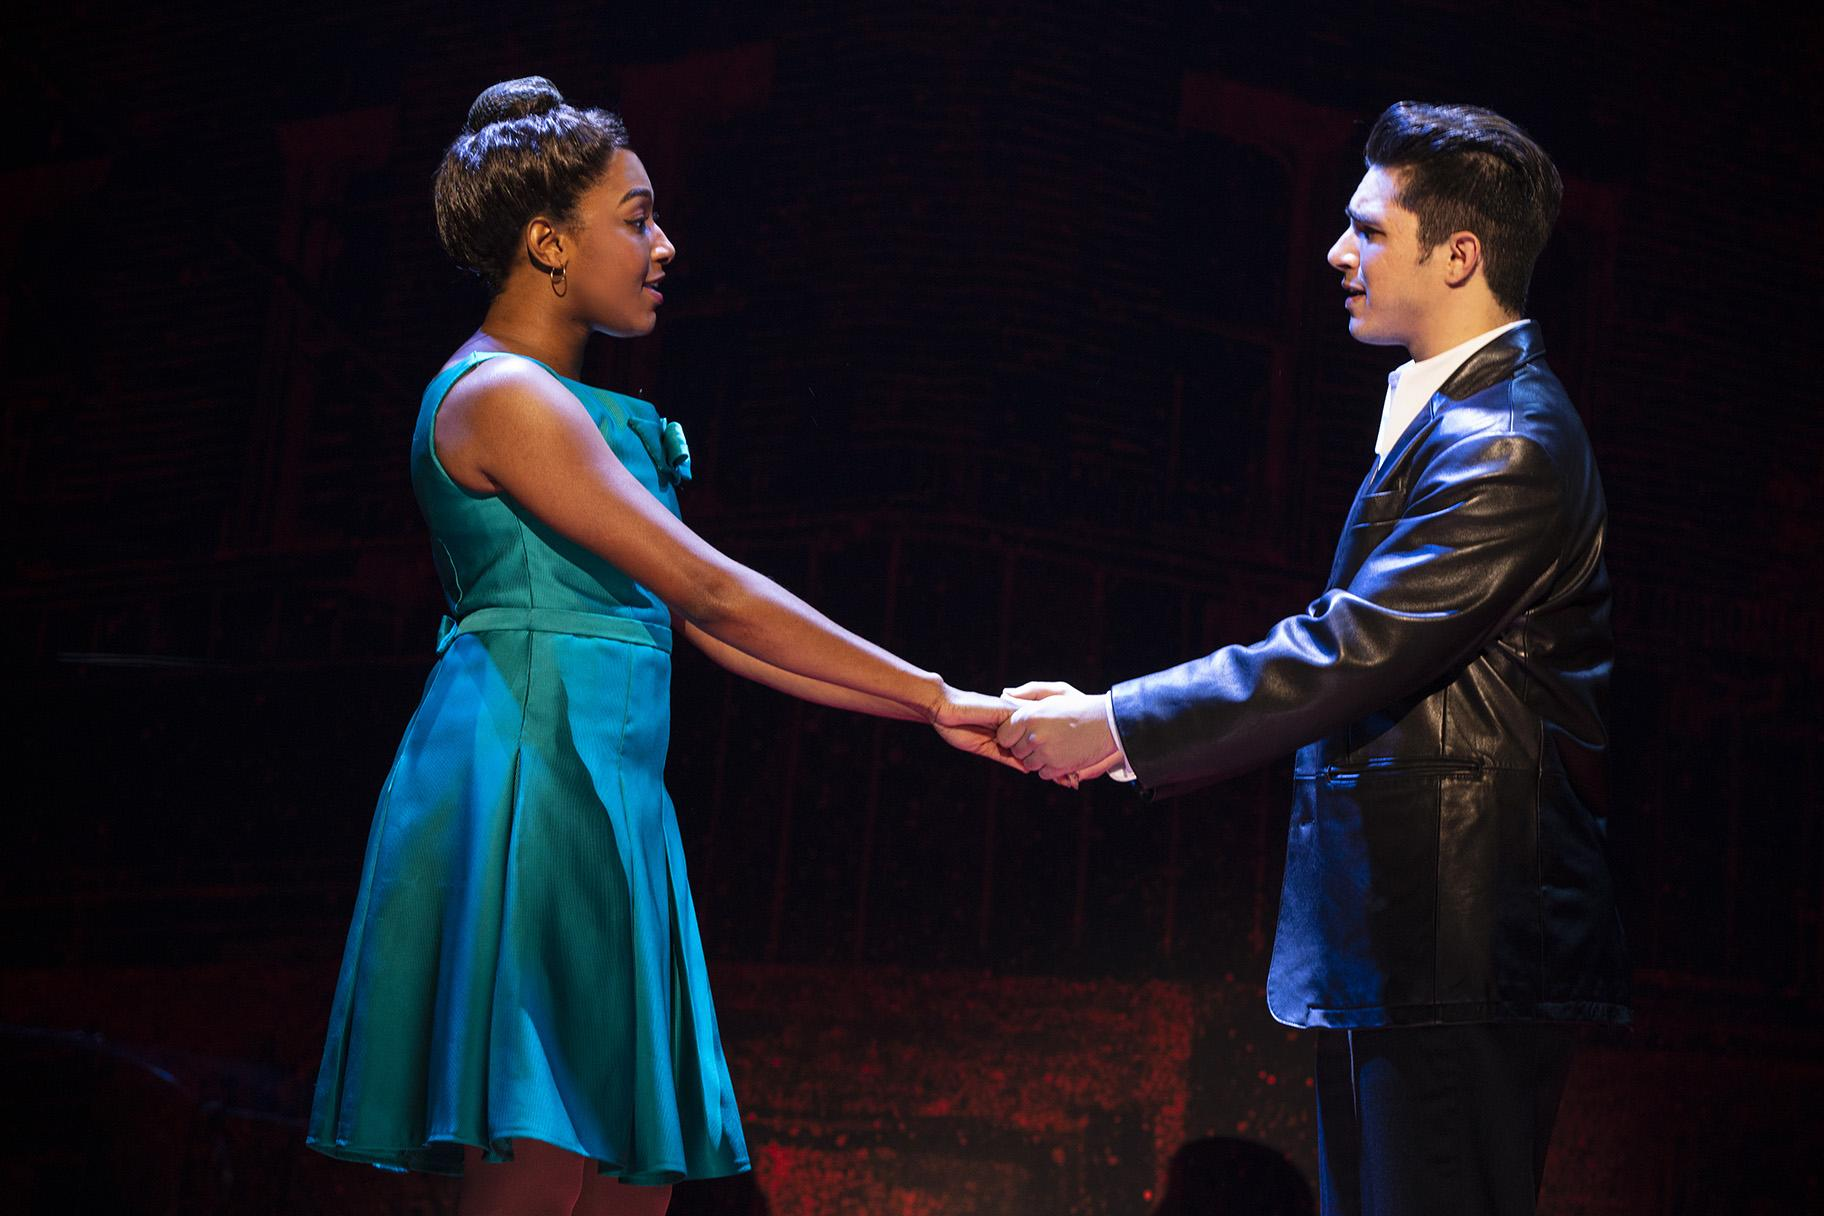 Brianna-Marie Bell and Joey Barreiro (Photo: Joan Marcus)